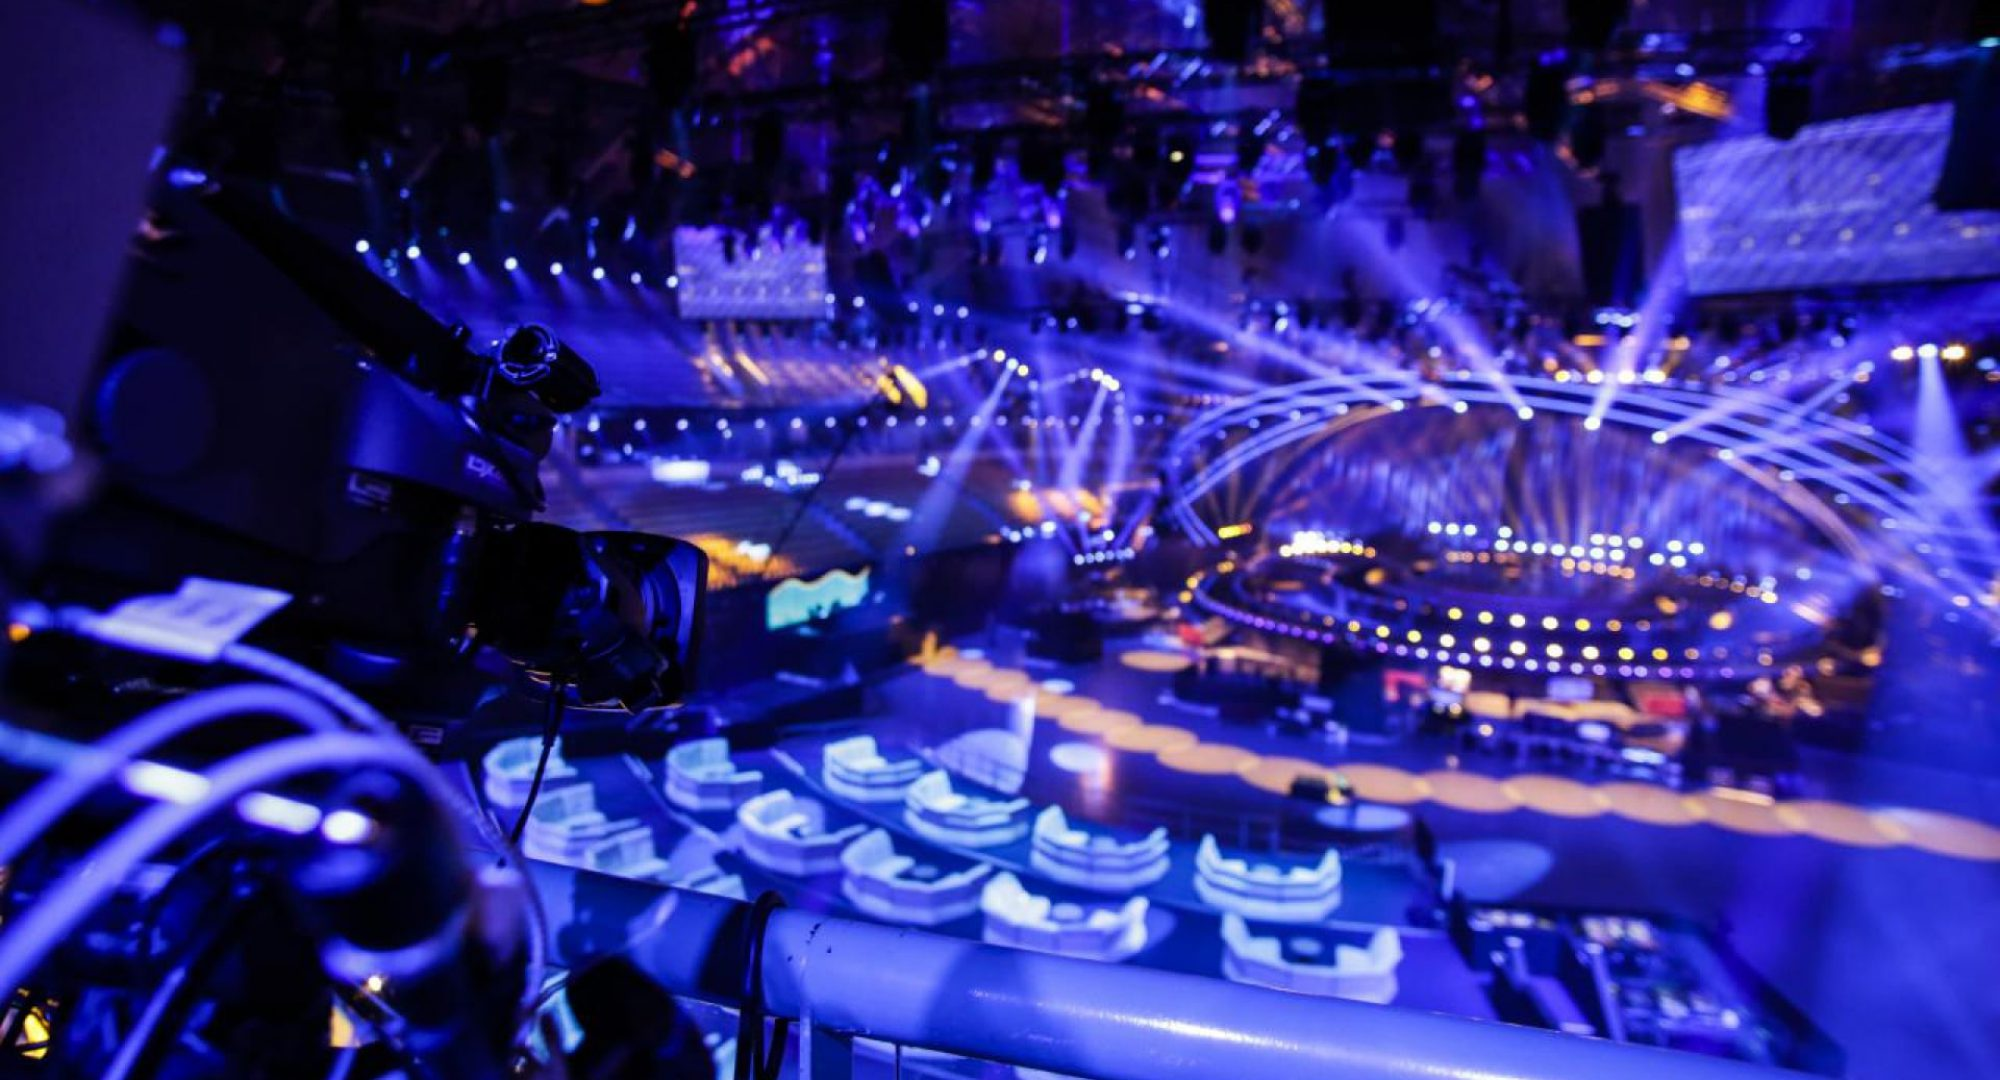 Eurovision Song Contest 2018 Stage - Színpad